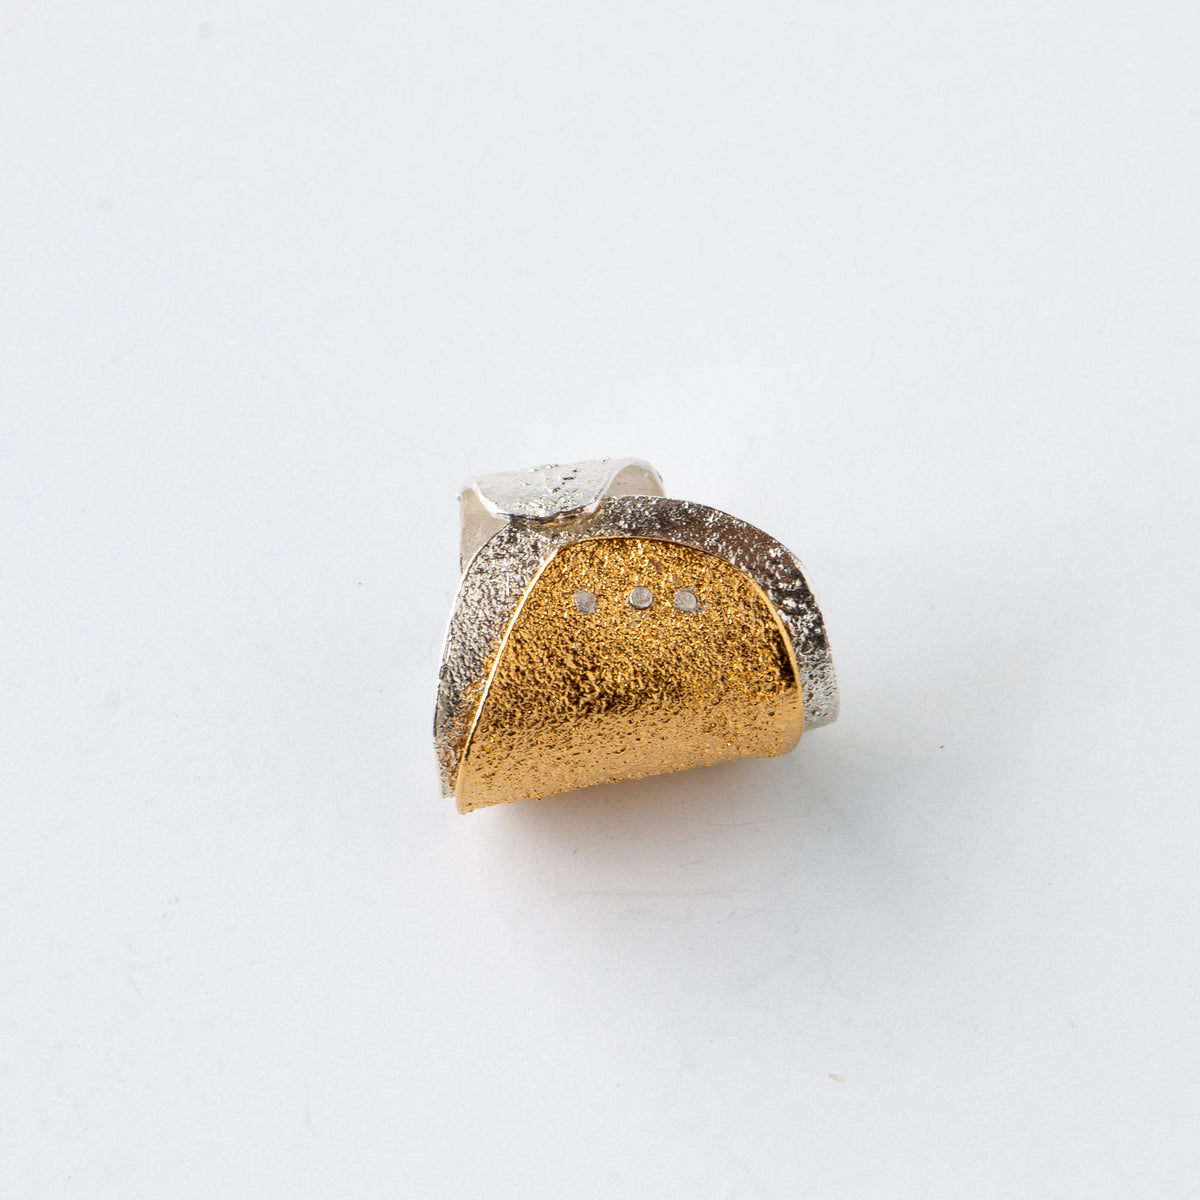 Acera - Adjustable Gold Plated Silver Ring - Sold by Chic & Basta